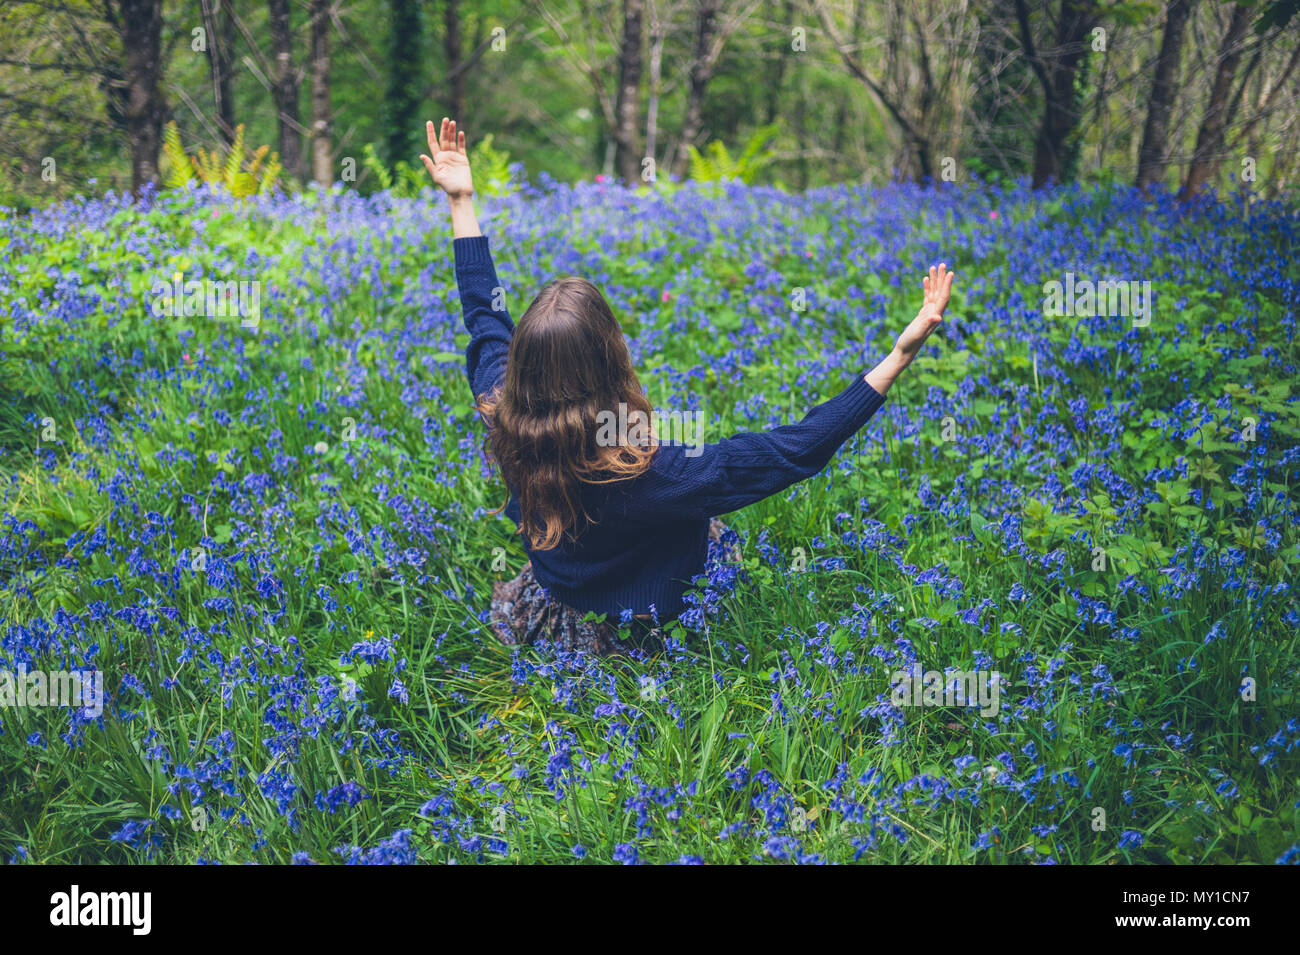 A young woman is sitting in a meadow of bluebells and is expressing joy by lifting her arms - Stock Image